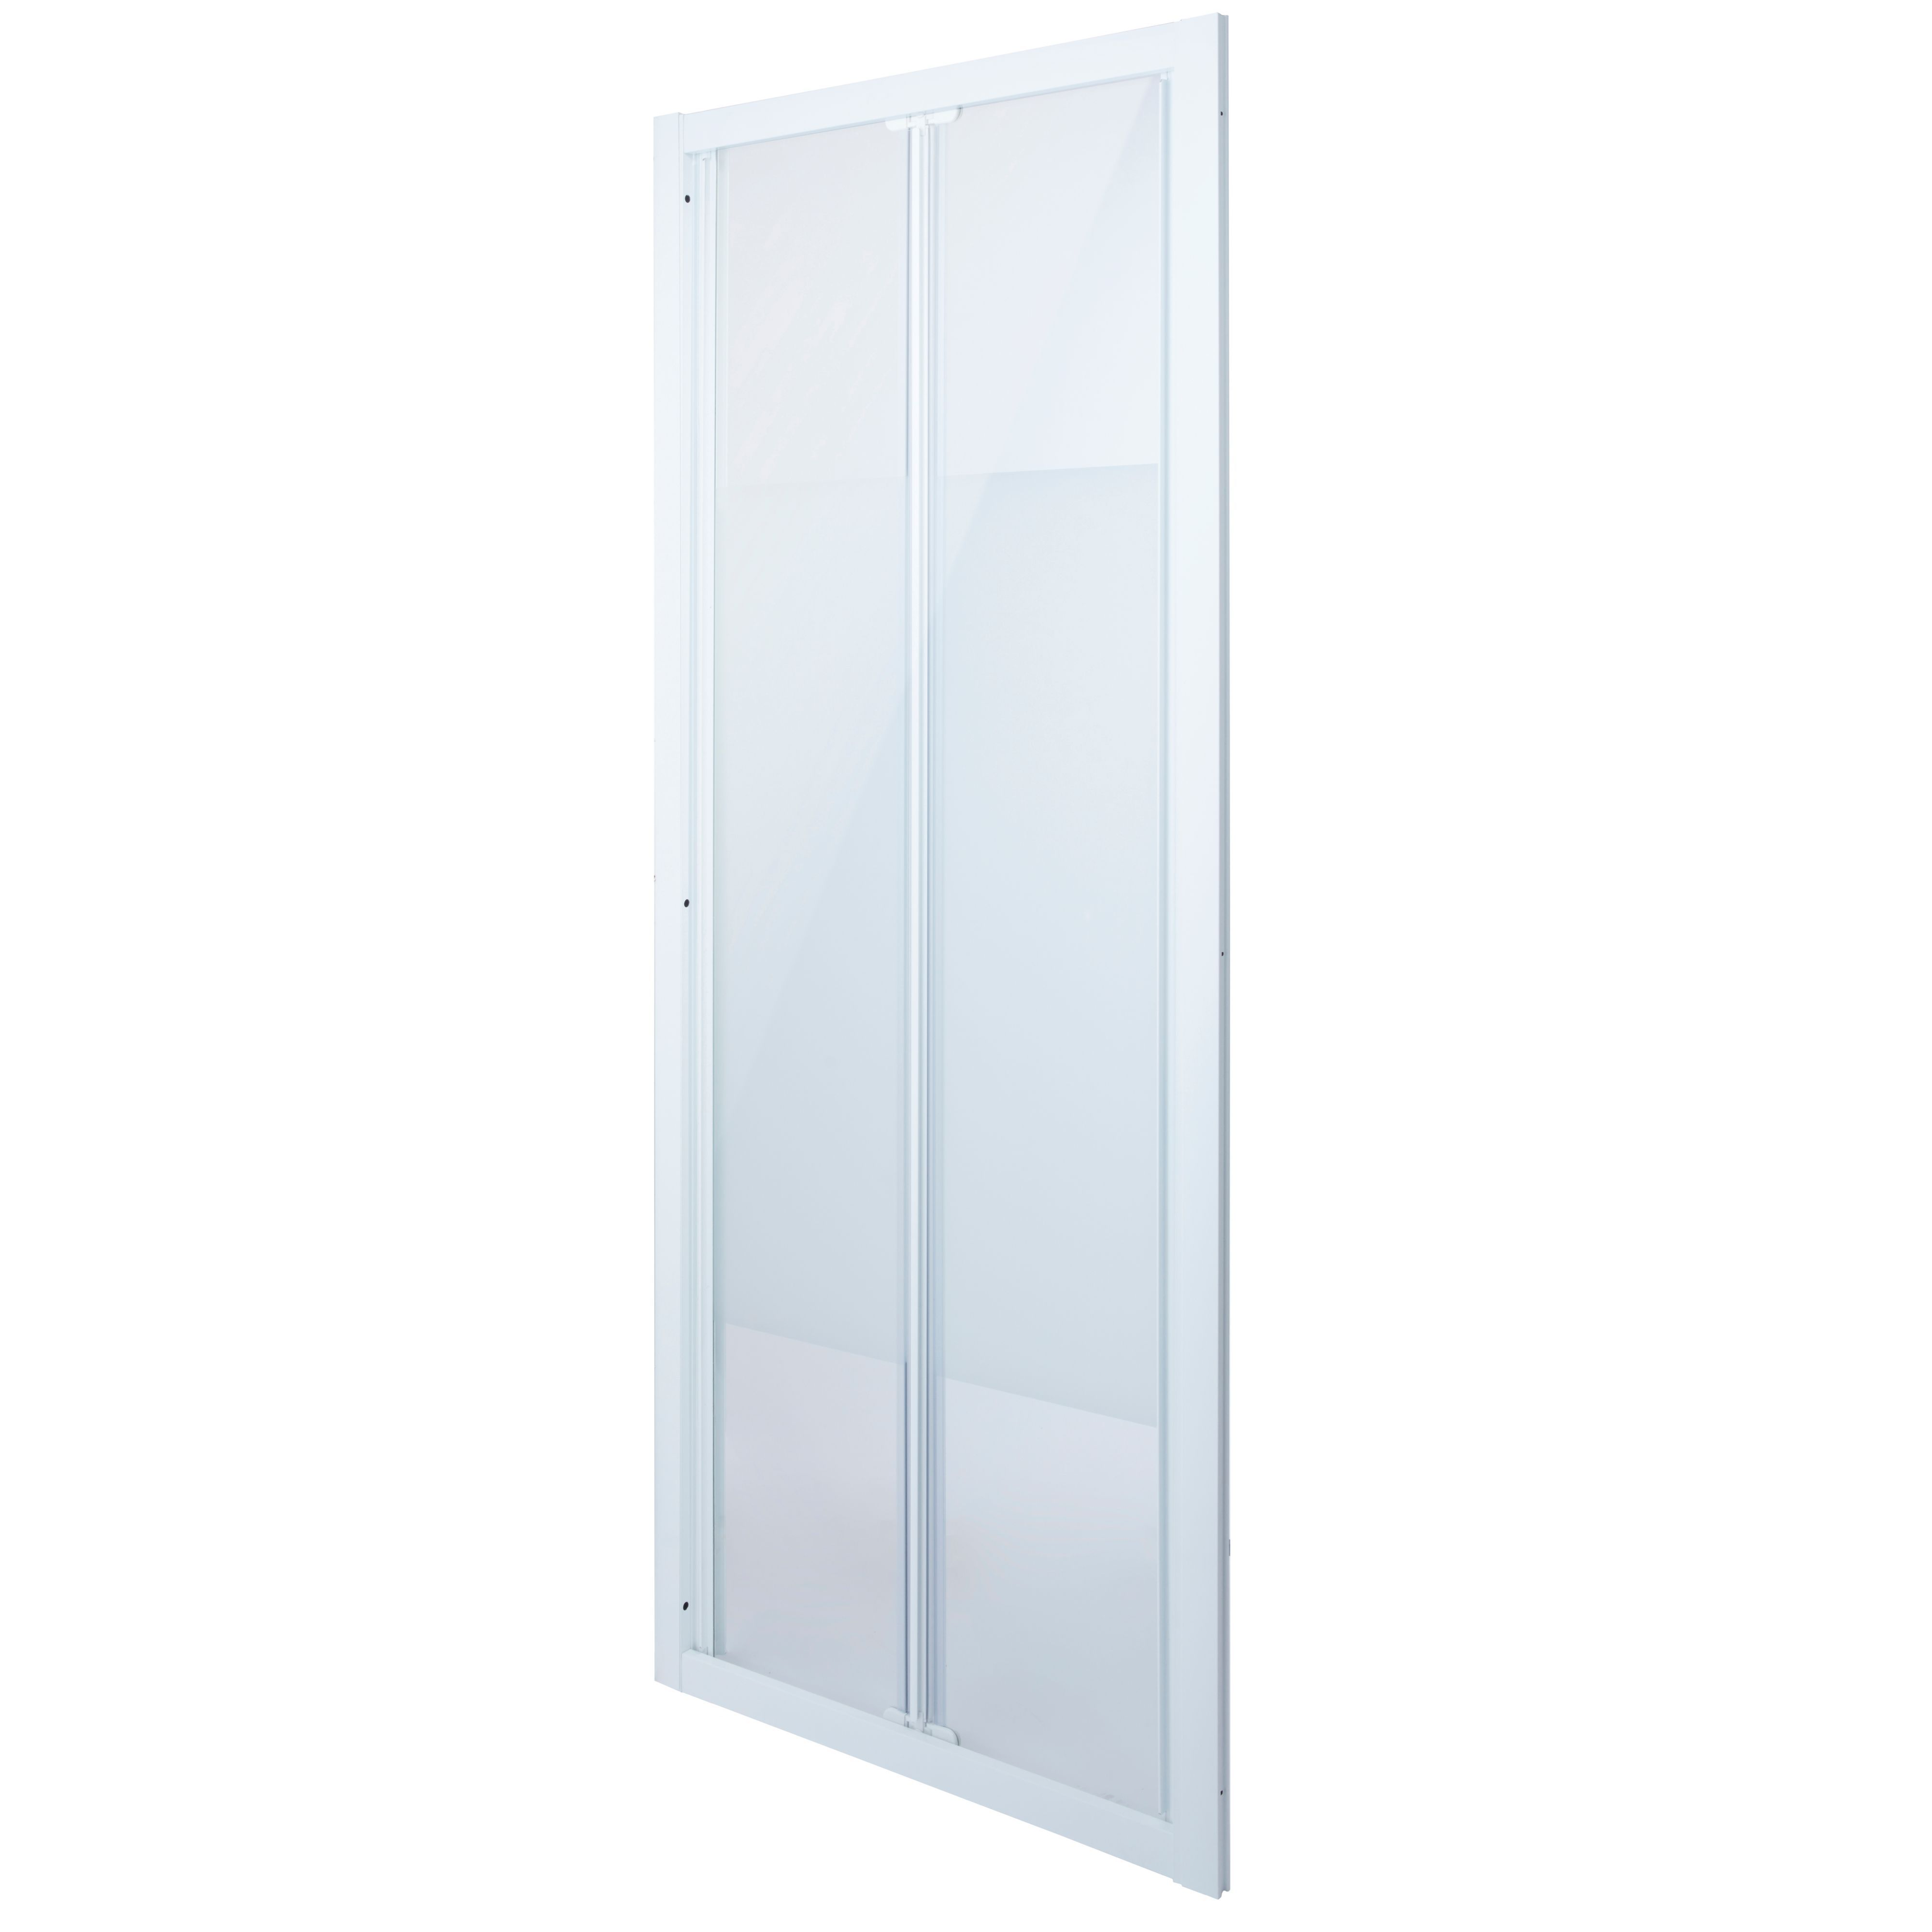 Cooke & Lewis Onega Bi-fold Shower Door With Frosted Effect Glass (w)760mm